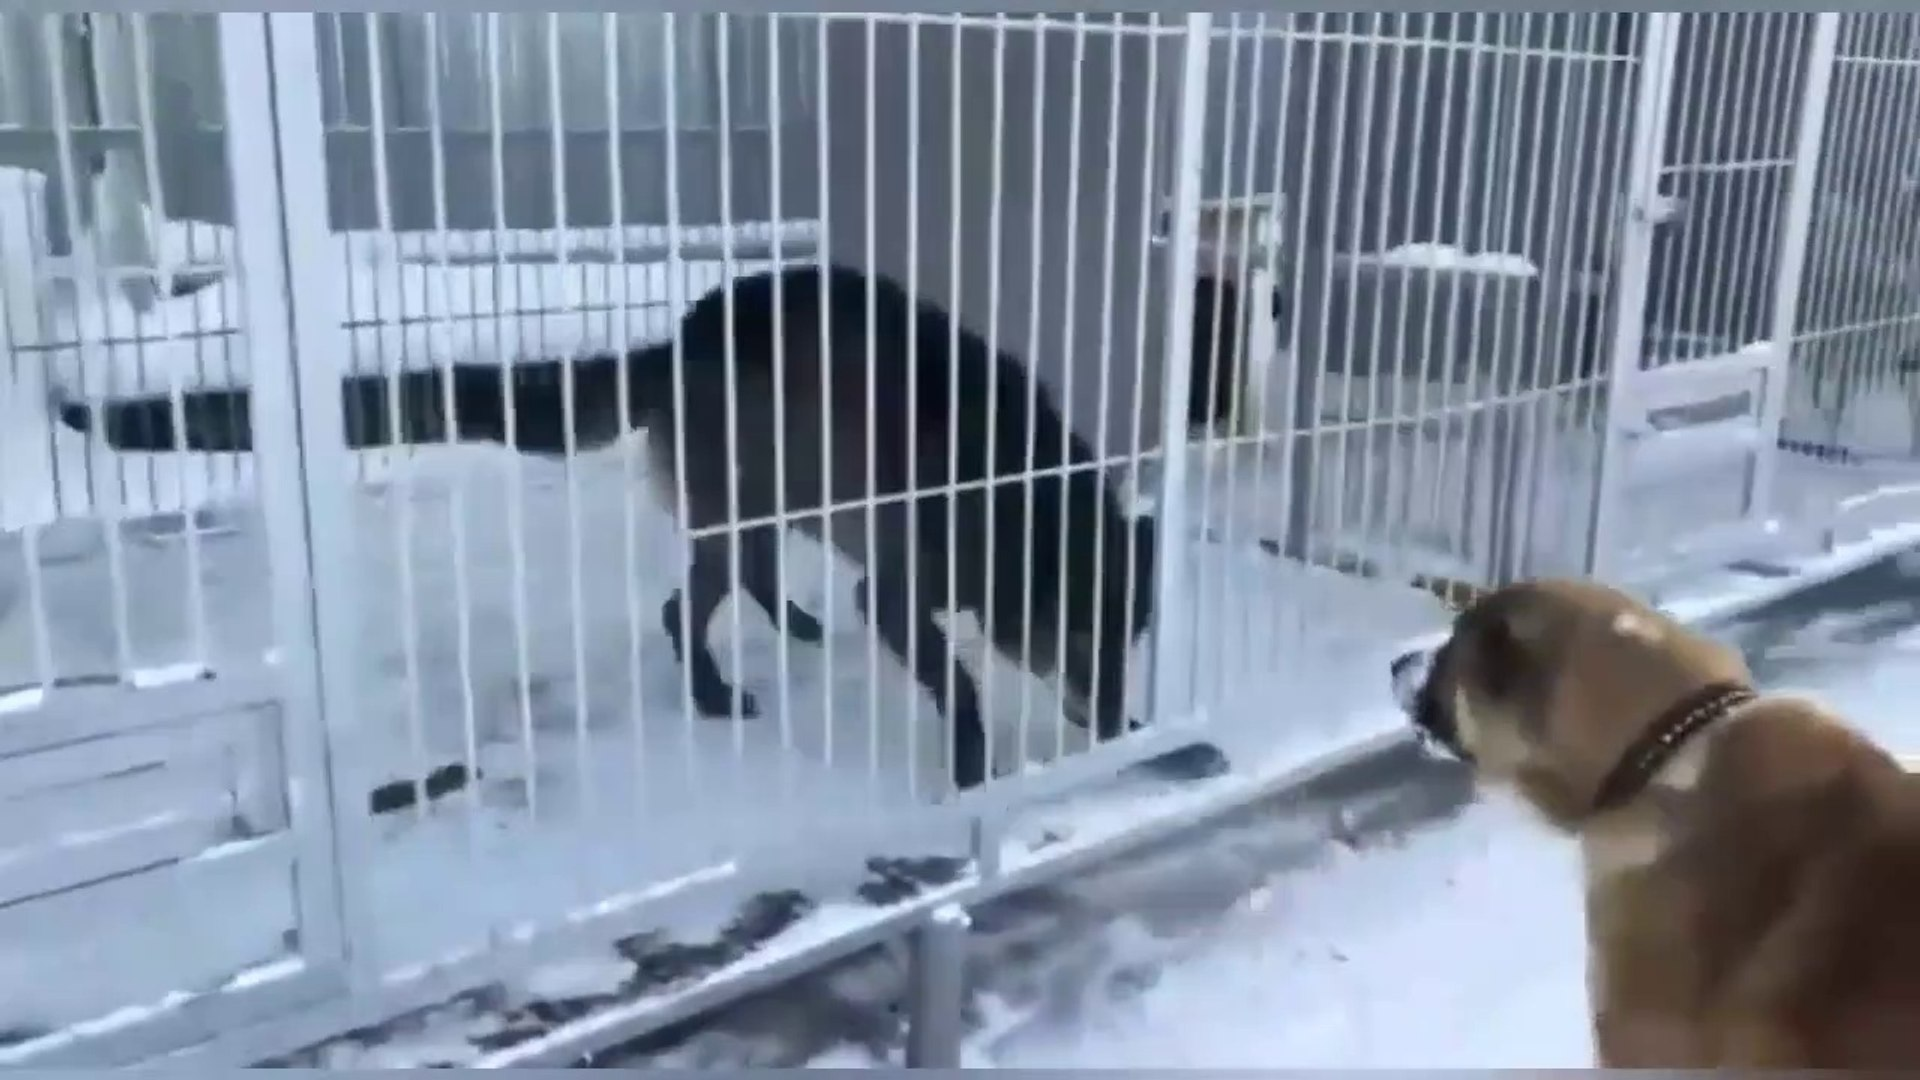 DOBERMAN, ALABAY KOPEKLERi VS KARAKURT - DOBERMAN, ALABAi DOGS VS BLACK WOLF